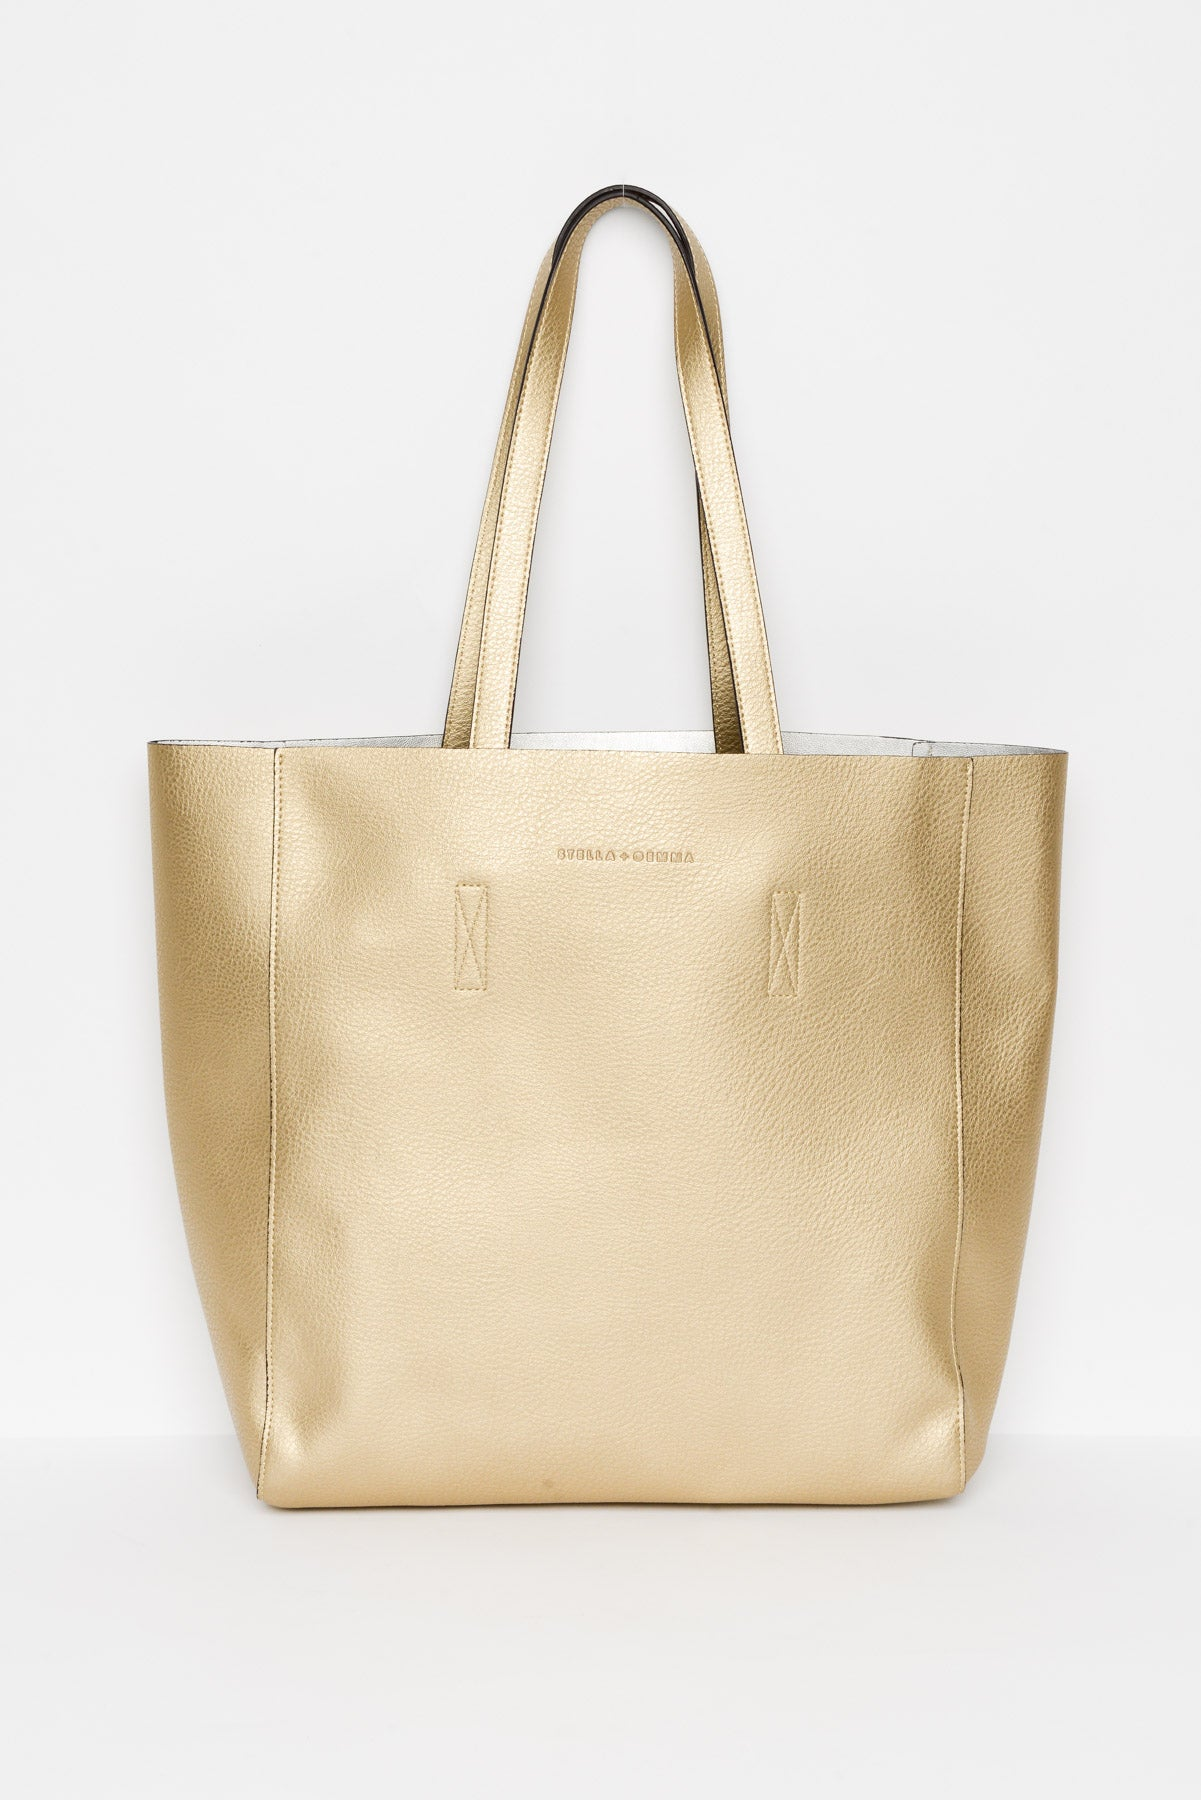 Ingrid Gold Vegan Leather Tote - Blue Bungalow